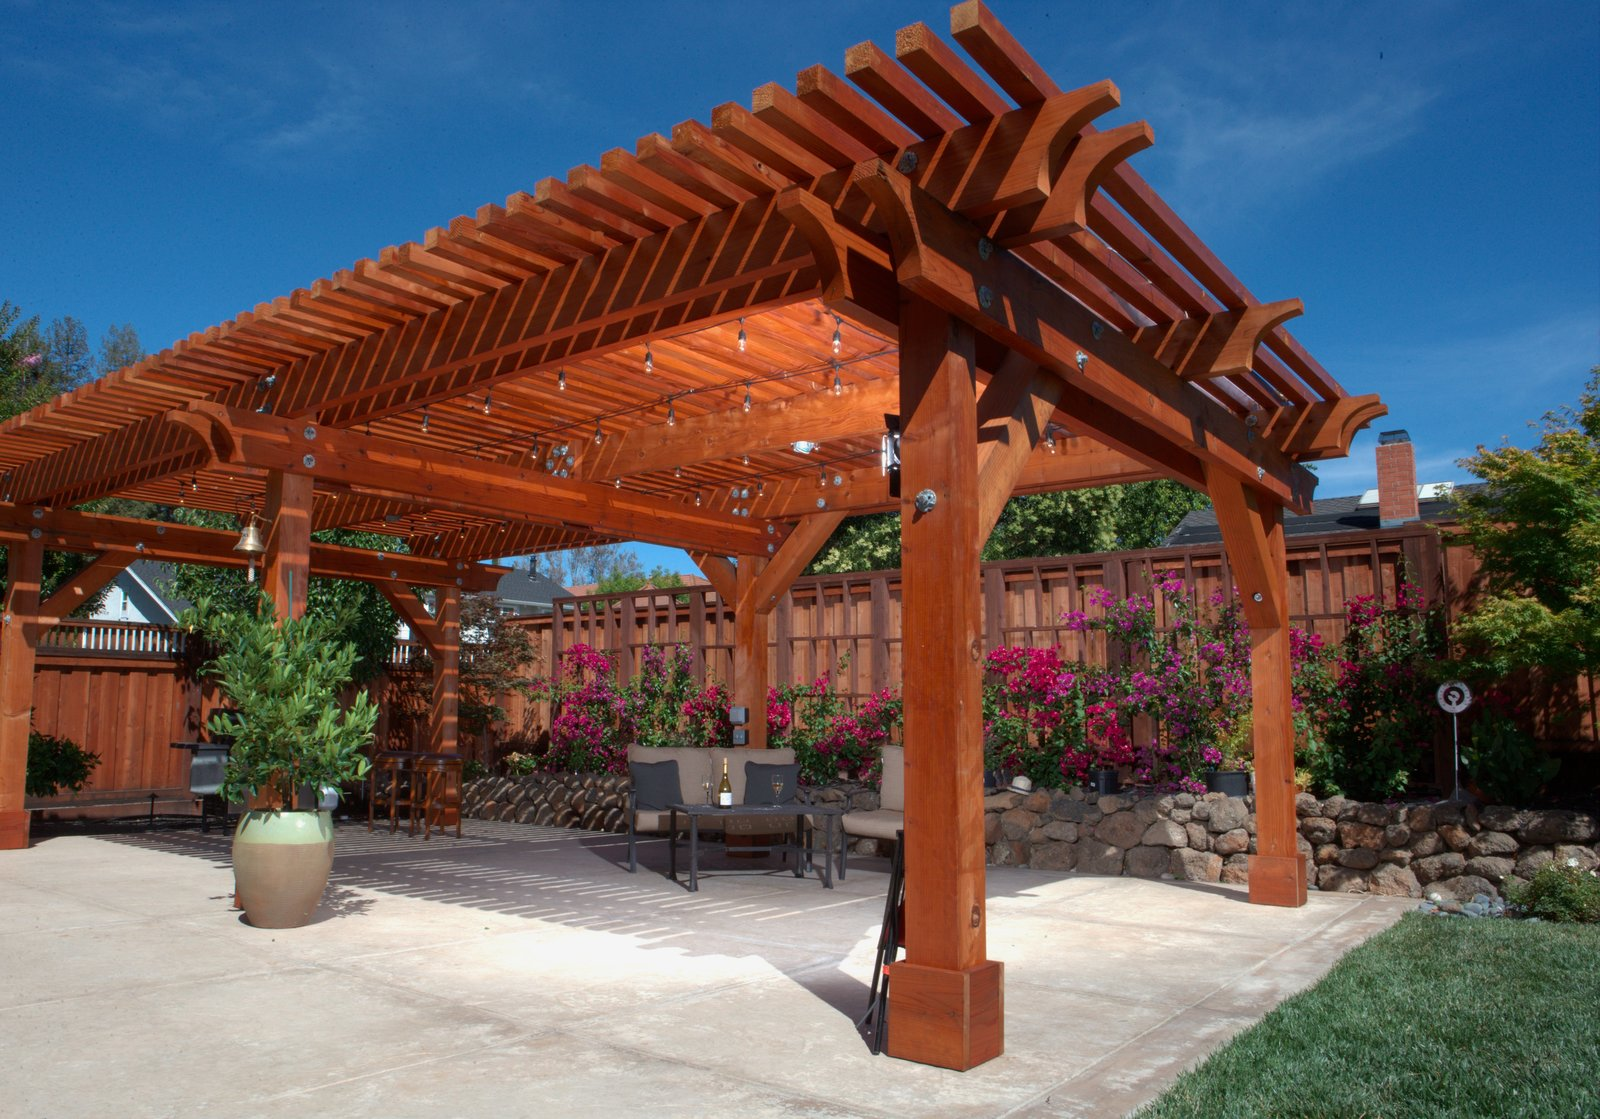 A versatile material, redwood can be left to turn a rustic, silver-tone gray, or finished to take on a glowing tint. A pergola such as this one, which will accompany Humboldt Redwood Company at Dwell on Design, can imbue your backyard space with both stateliness and charm. Beauty and Brains: Building Sustainably With Redwood - Photo 7 of 7